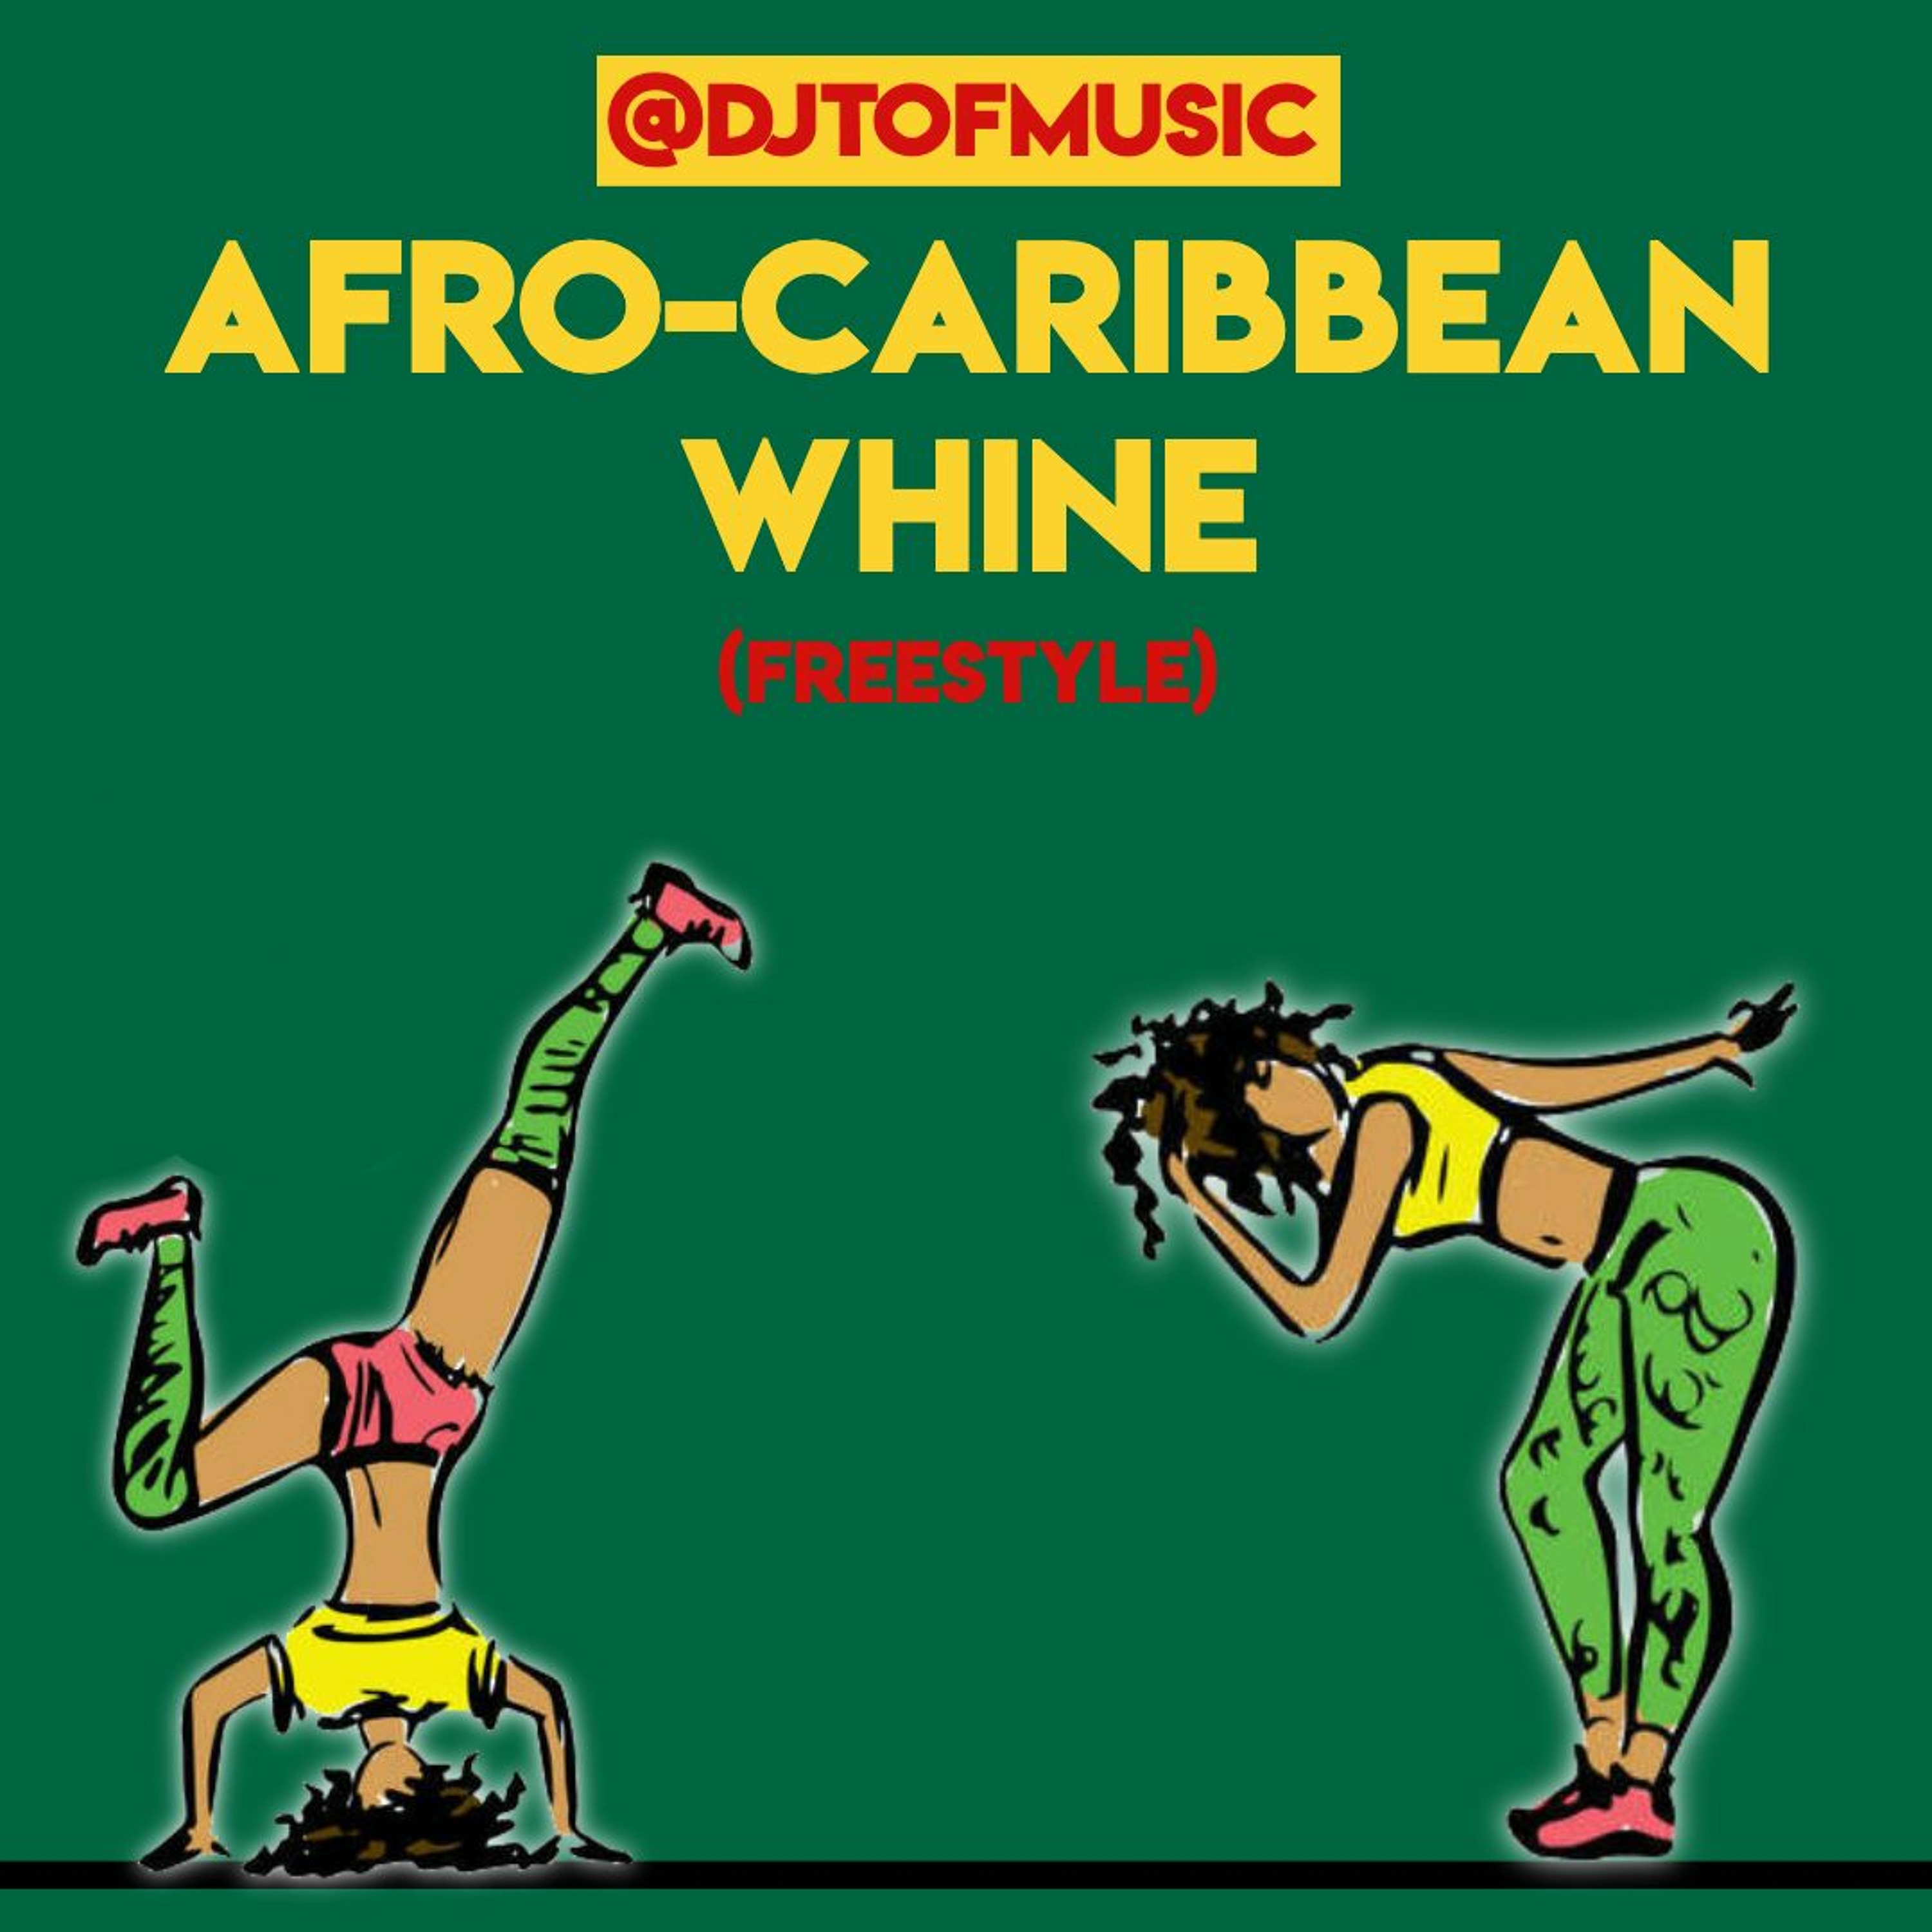 AFRO CARIBBEAN WHINE(FREESTYLE)😂😂🤣